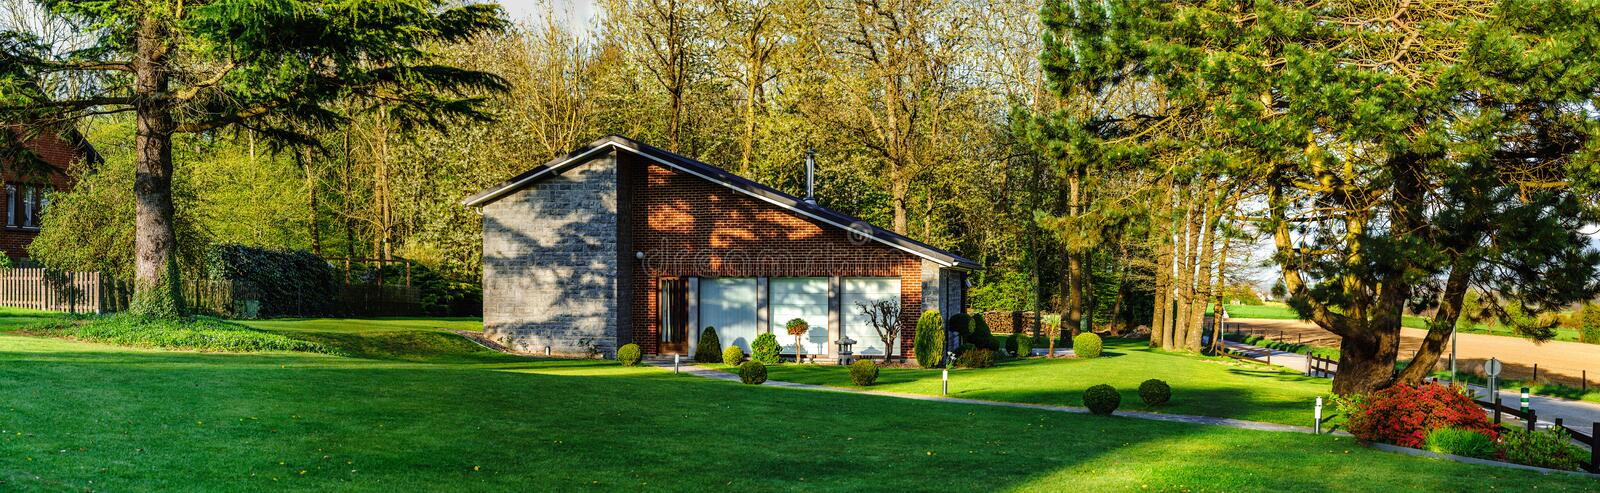 Modern family house in calm nature place, sunset time. Belgium royalty free stock photo